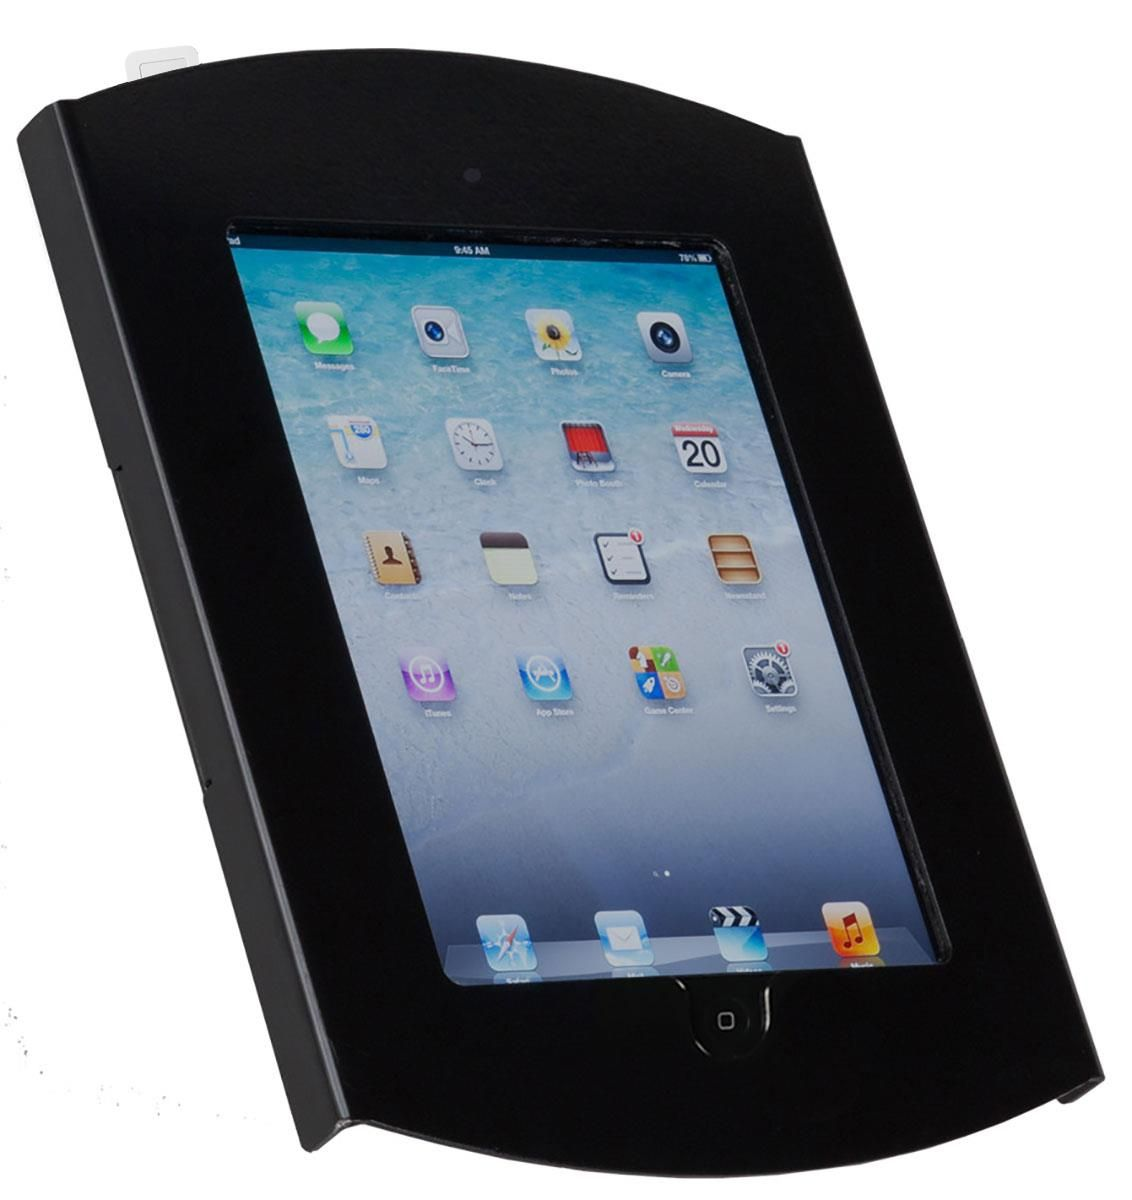 Ipad Wall Mount Locking Enclosure W Hidden Home Cc Reader Compatible Black Ipad Wall Mount Cc Card Tablet